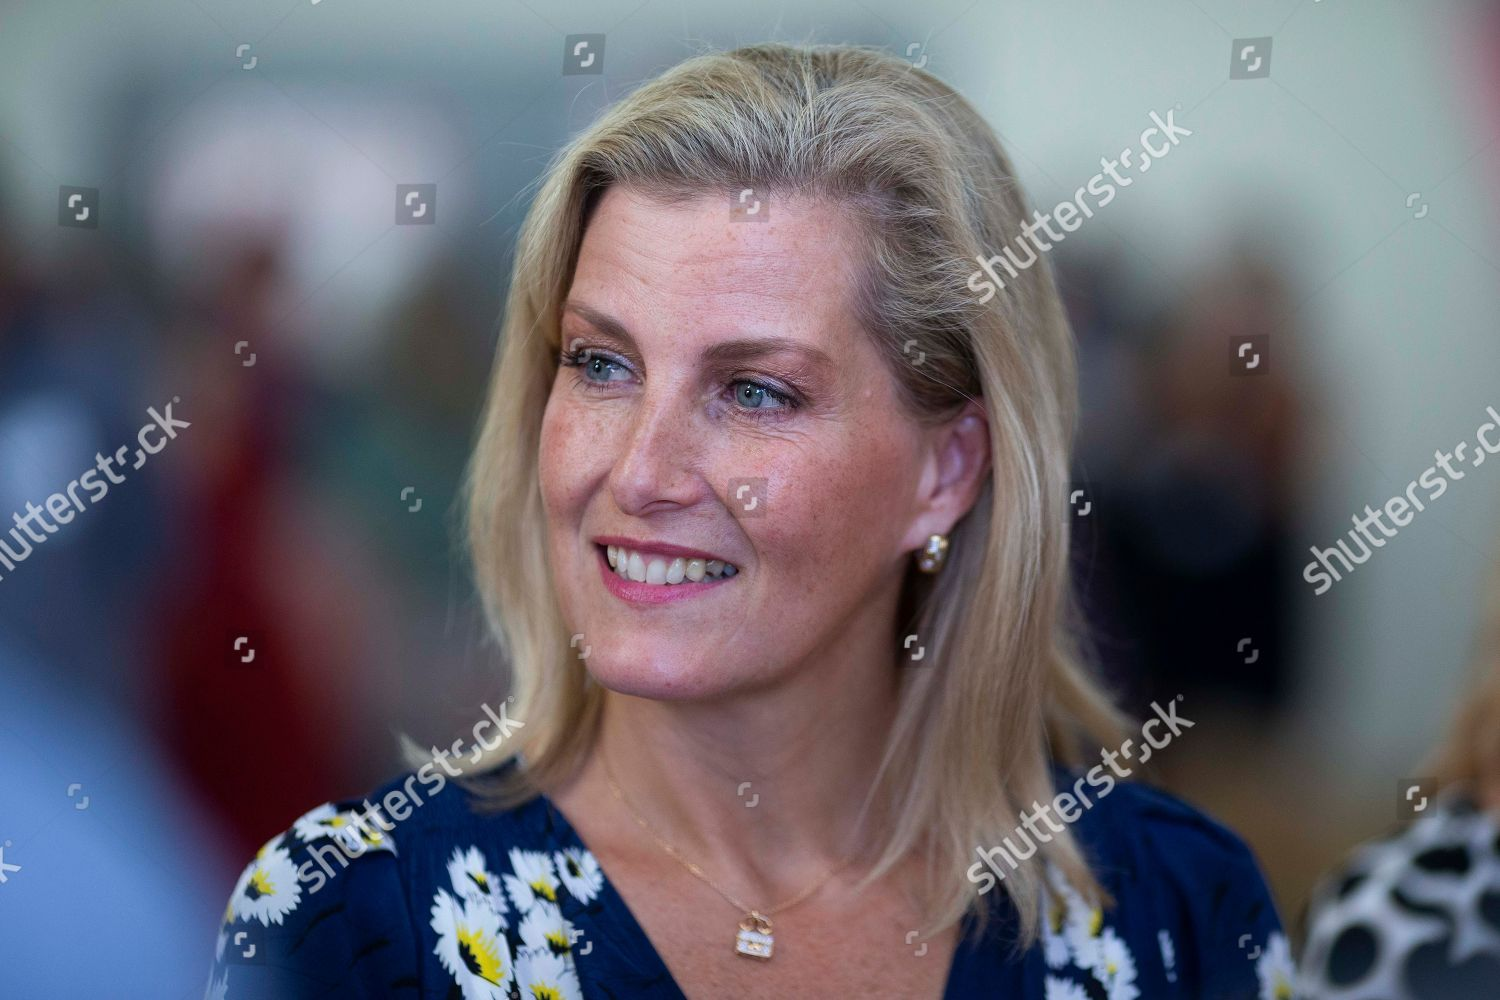 sophie-countess-of-wessex-visits-the-me2-club-tea-party-woodley-uk-shutterstock-editorial-9885213y.jpg